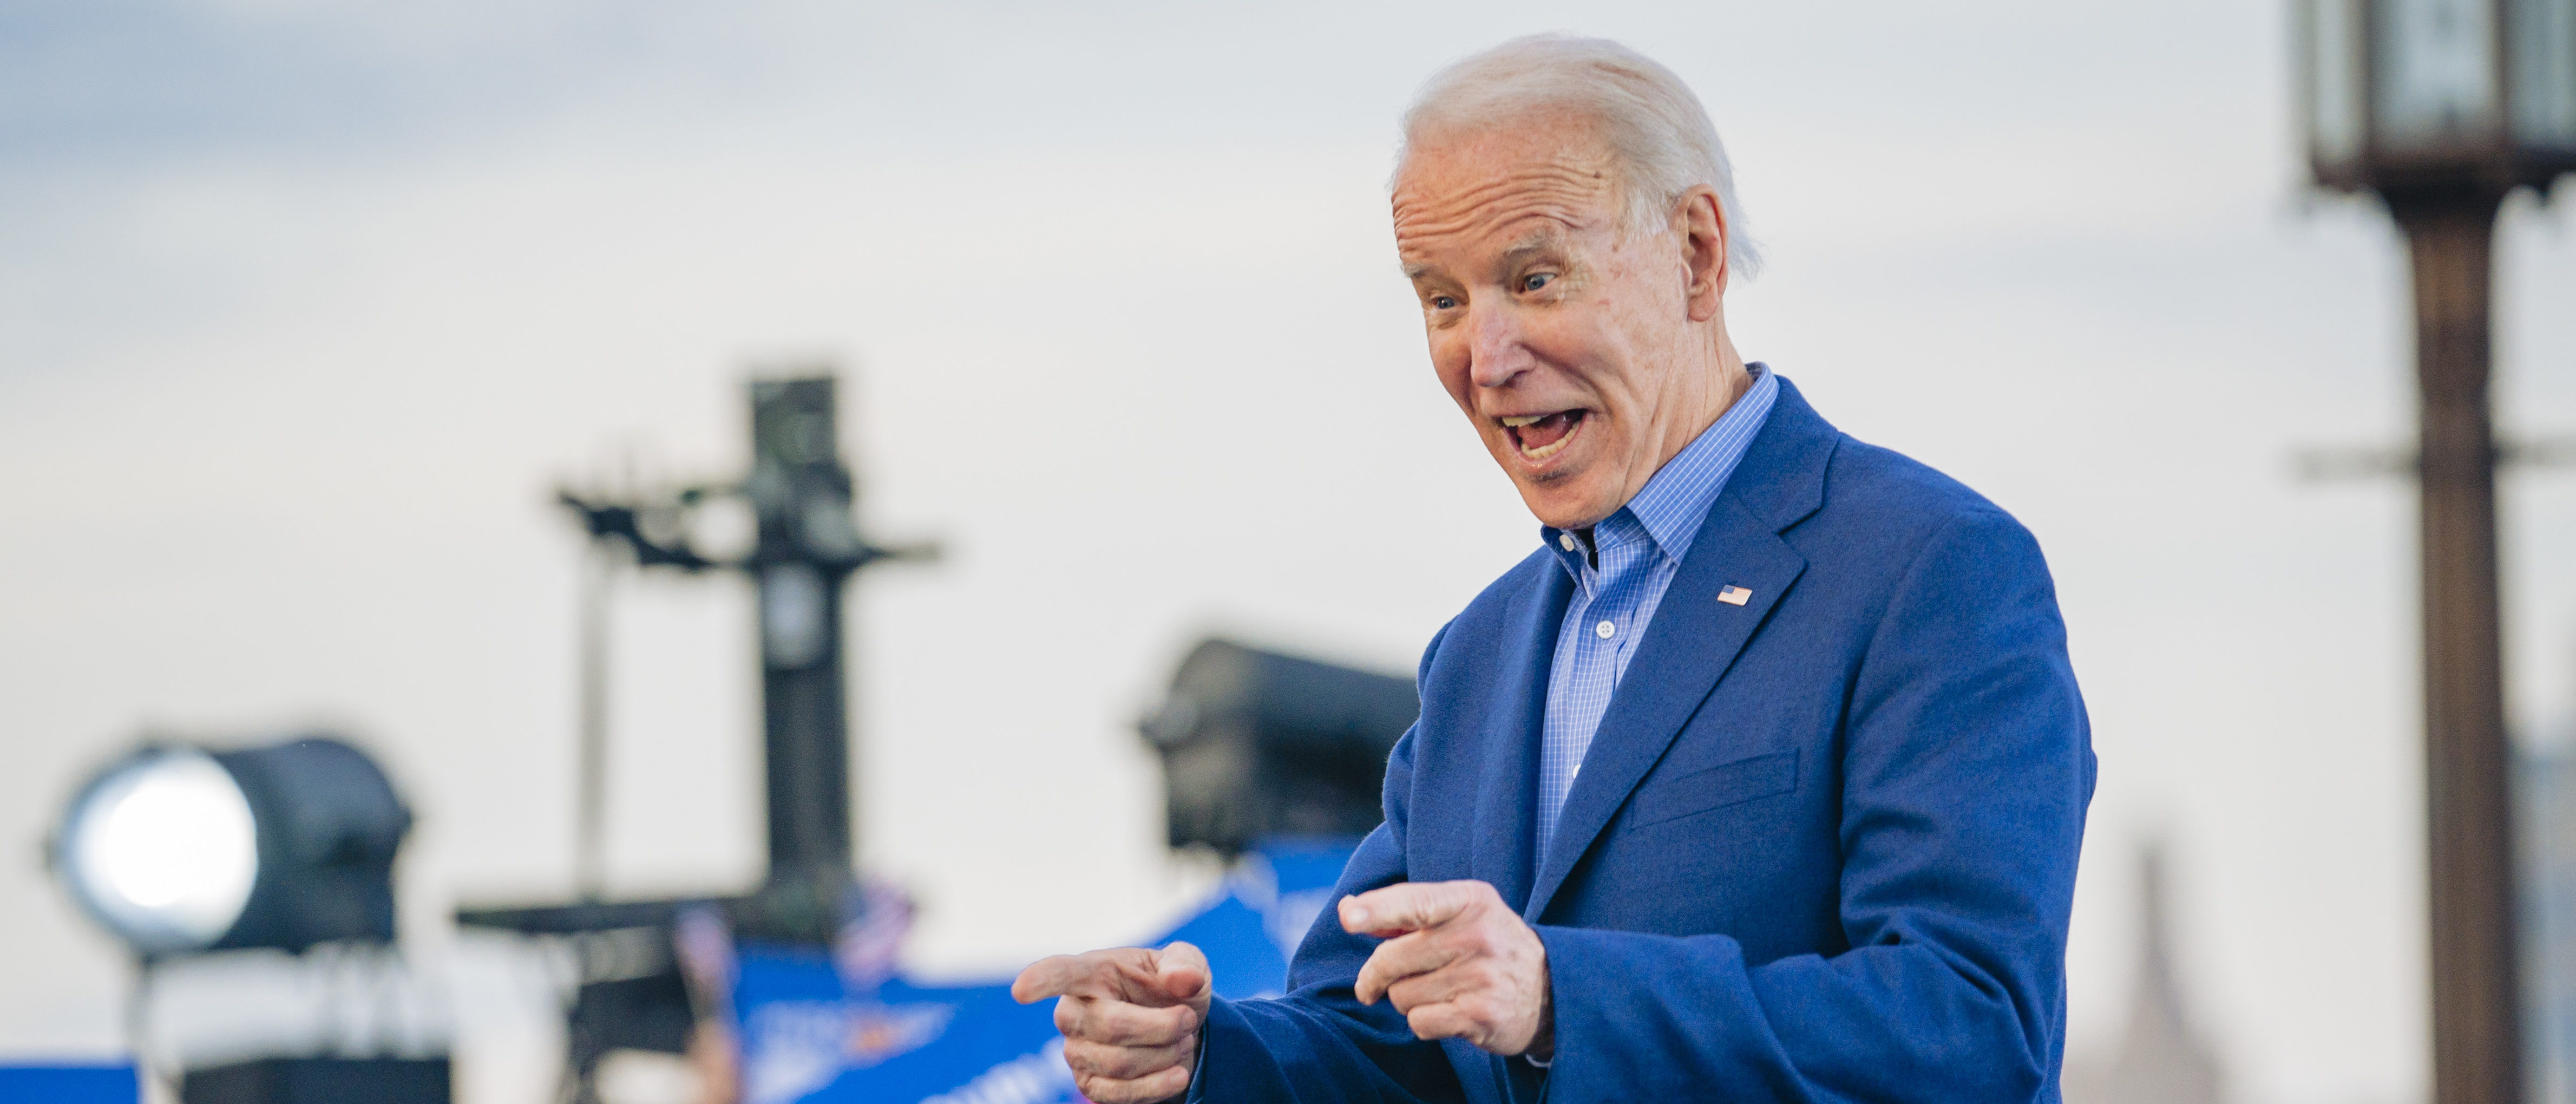 KANSAS CITY, MO - MARCH 07: Democratic Presidential Candidate former Vice President Joe Biden speaks to a full crowd during the Joe Biden Campaign Rally at the National World War I Museum and Memorial on March 7, 2020 in Kansas City, Missouri. (Photo by Kyle Rivas/Getty Images)